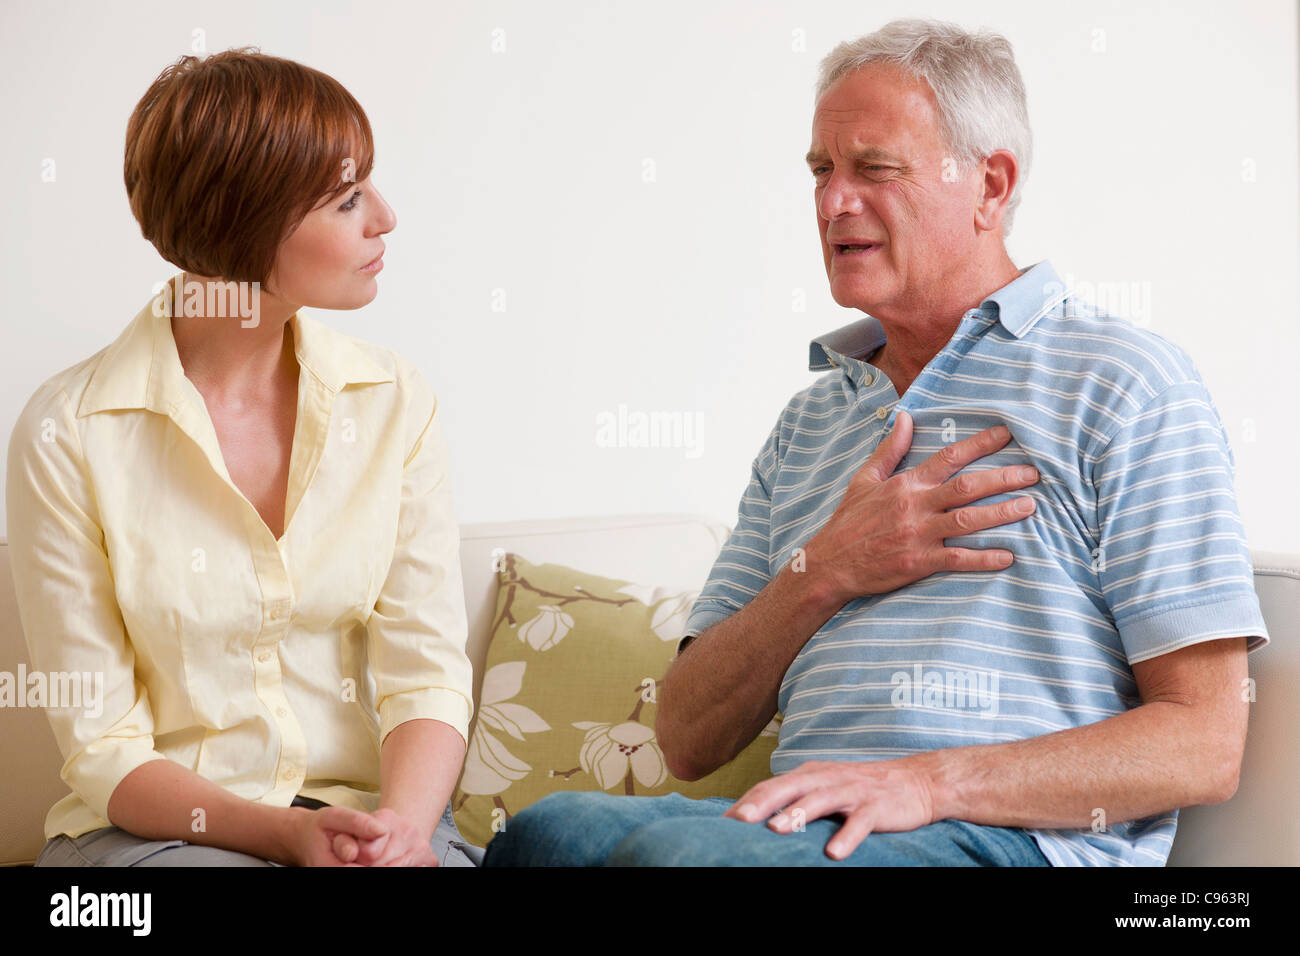 Man having a heart attack. - Stock Image